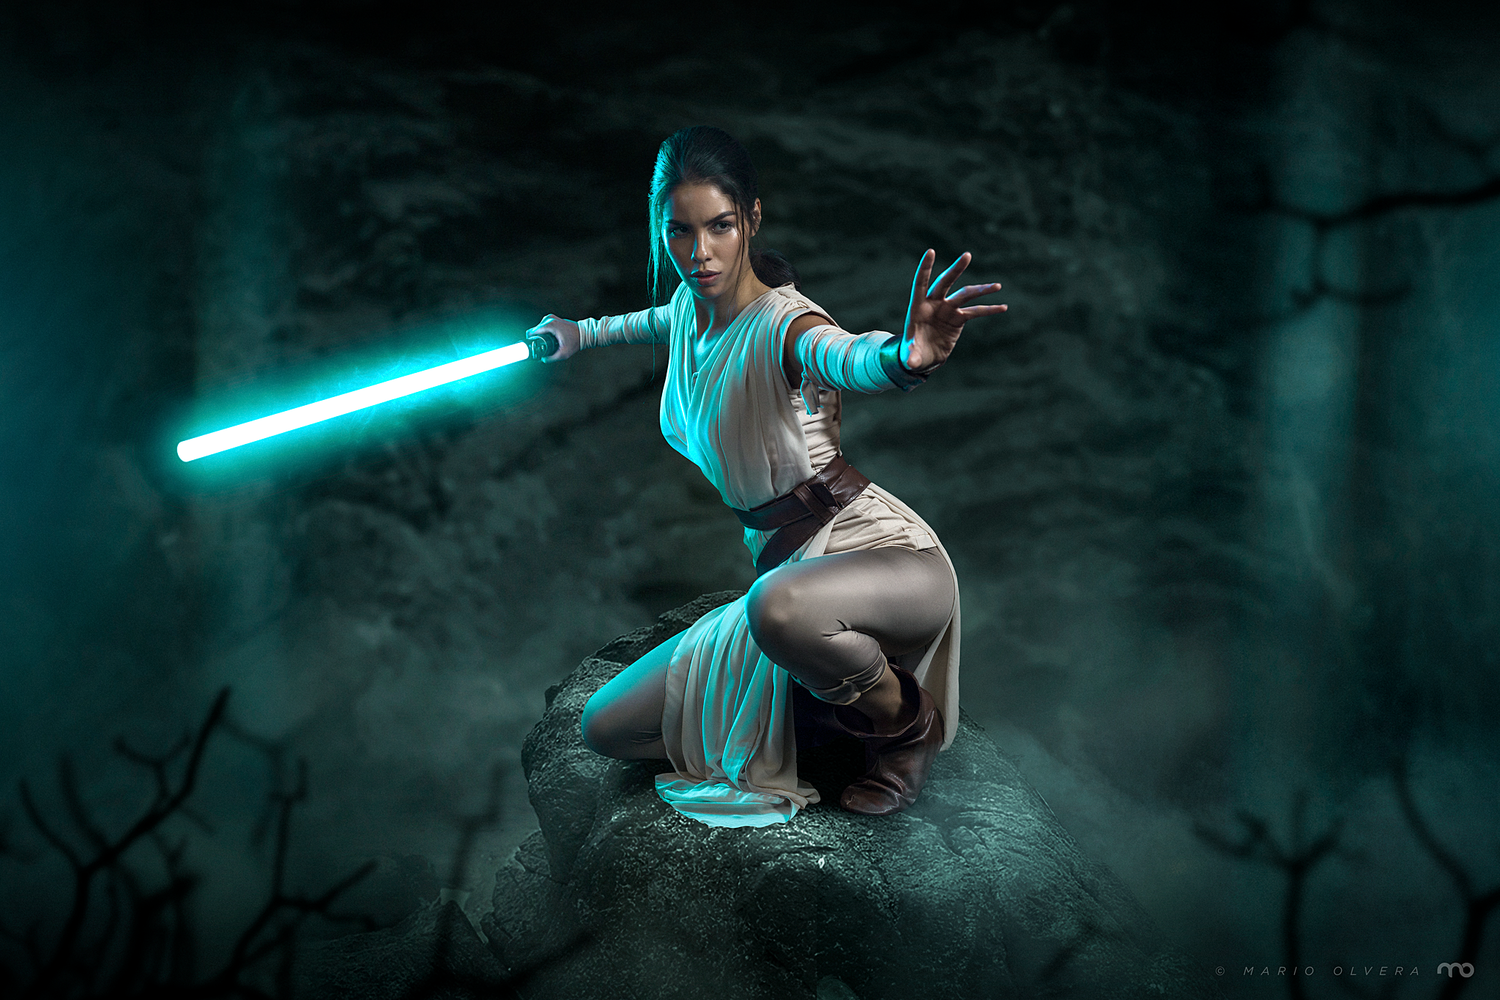 May the force be with you by Mario Olvera